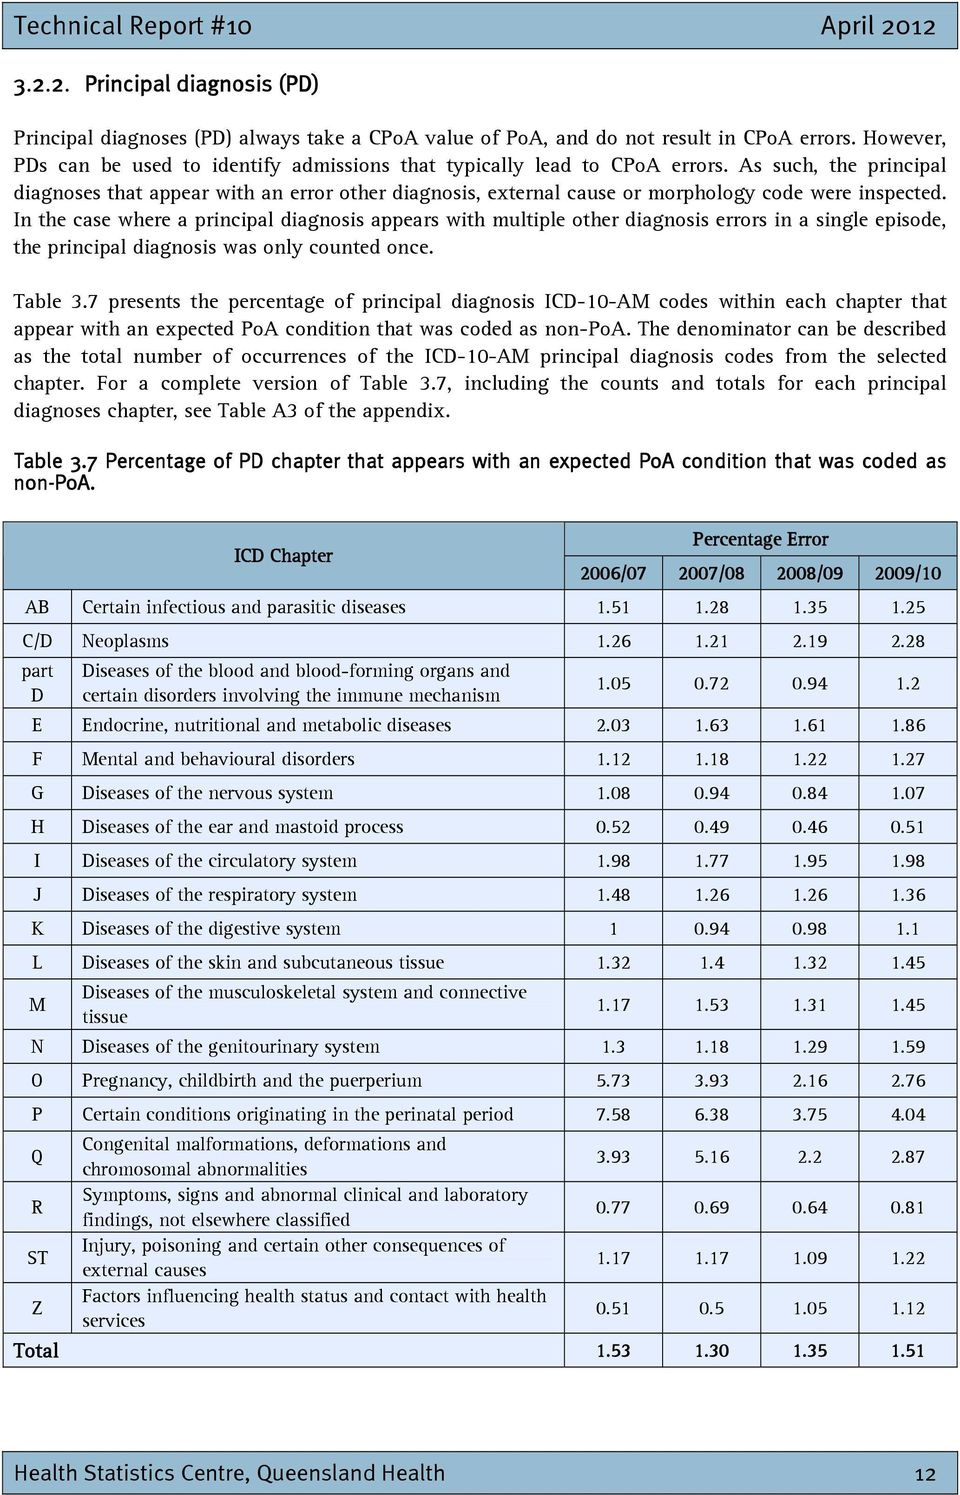 In the case where a principal diagnosis appears multiple other diagnosis errors in a single episode, the principal diagnosis was only counted once. Table 3.